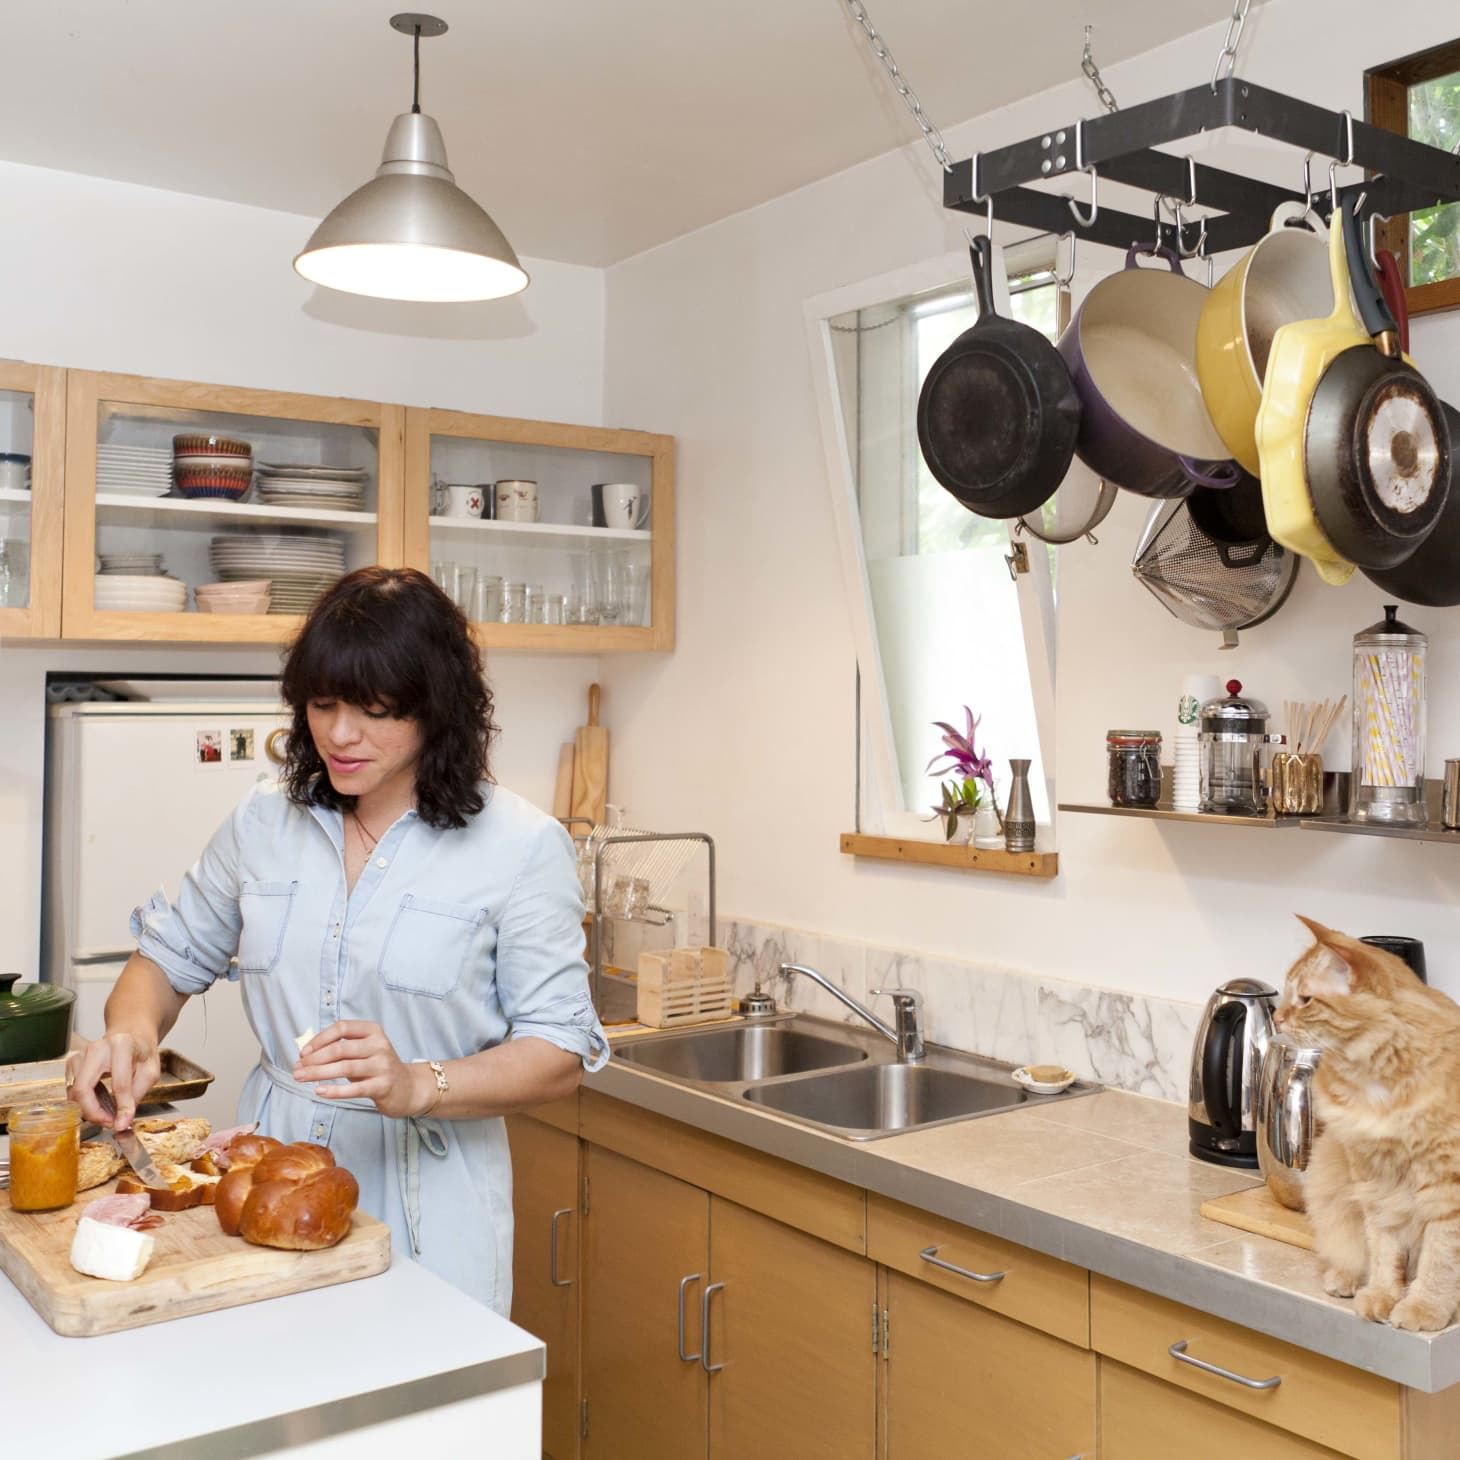 6 Tips For A Kitchen You Can Love For A Lifetime: 7 Things You Can Do To Love Your Small Kitchen